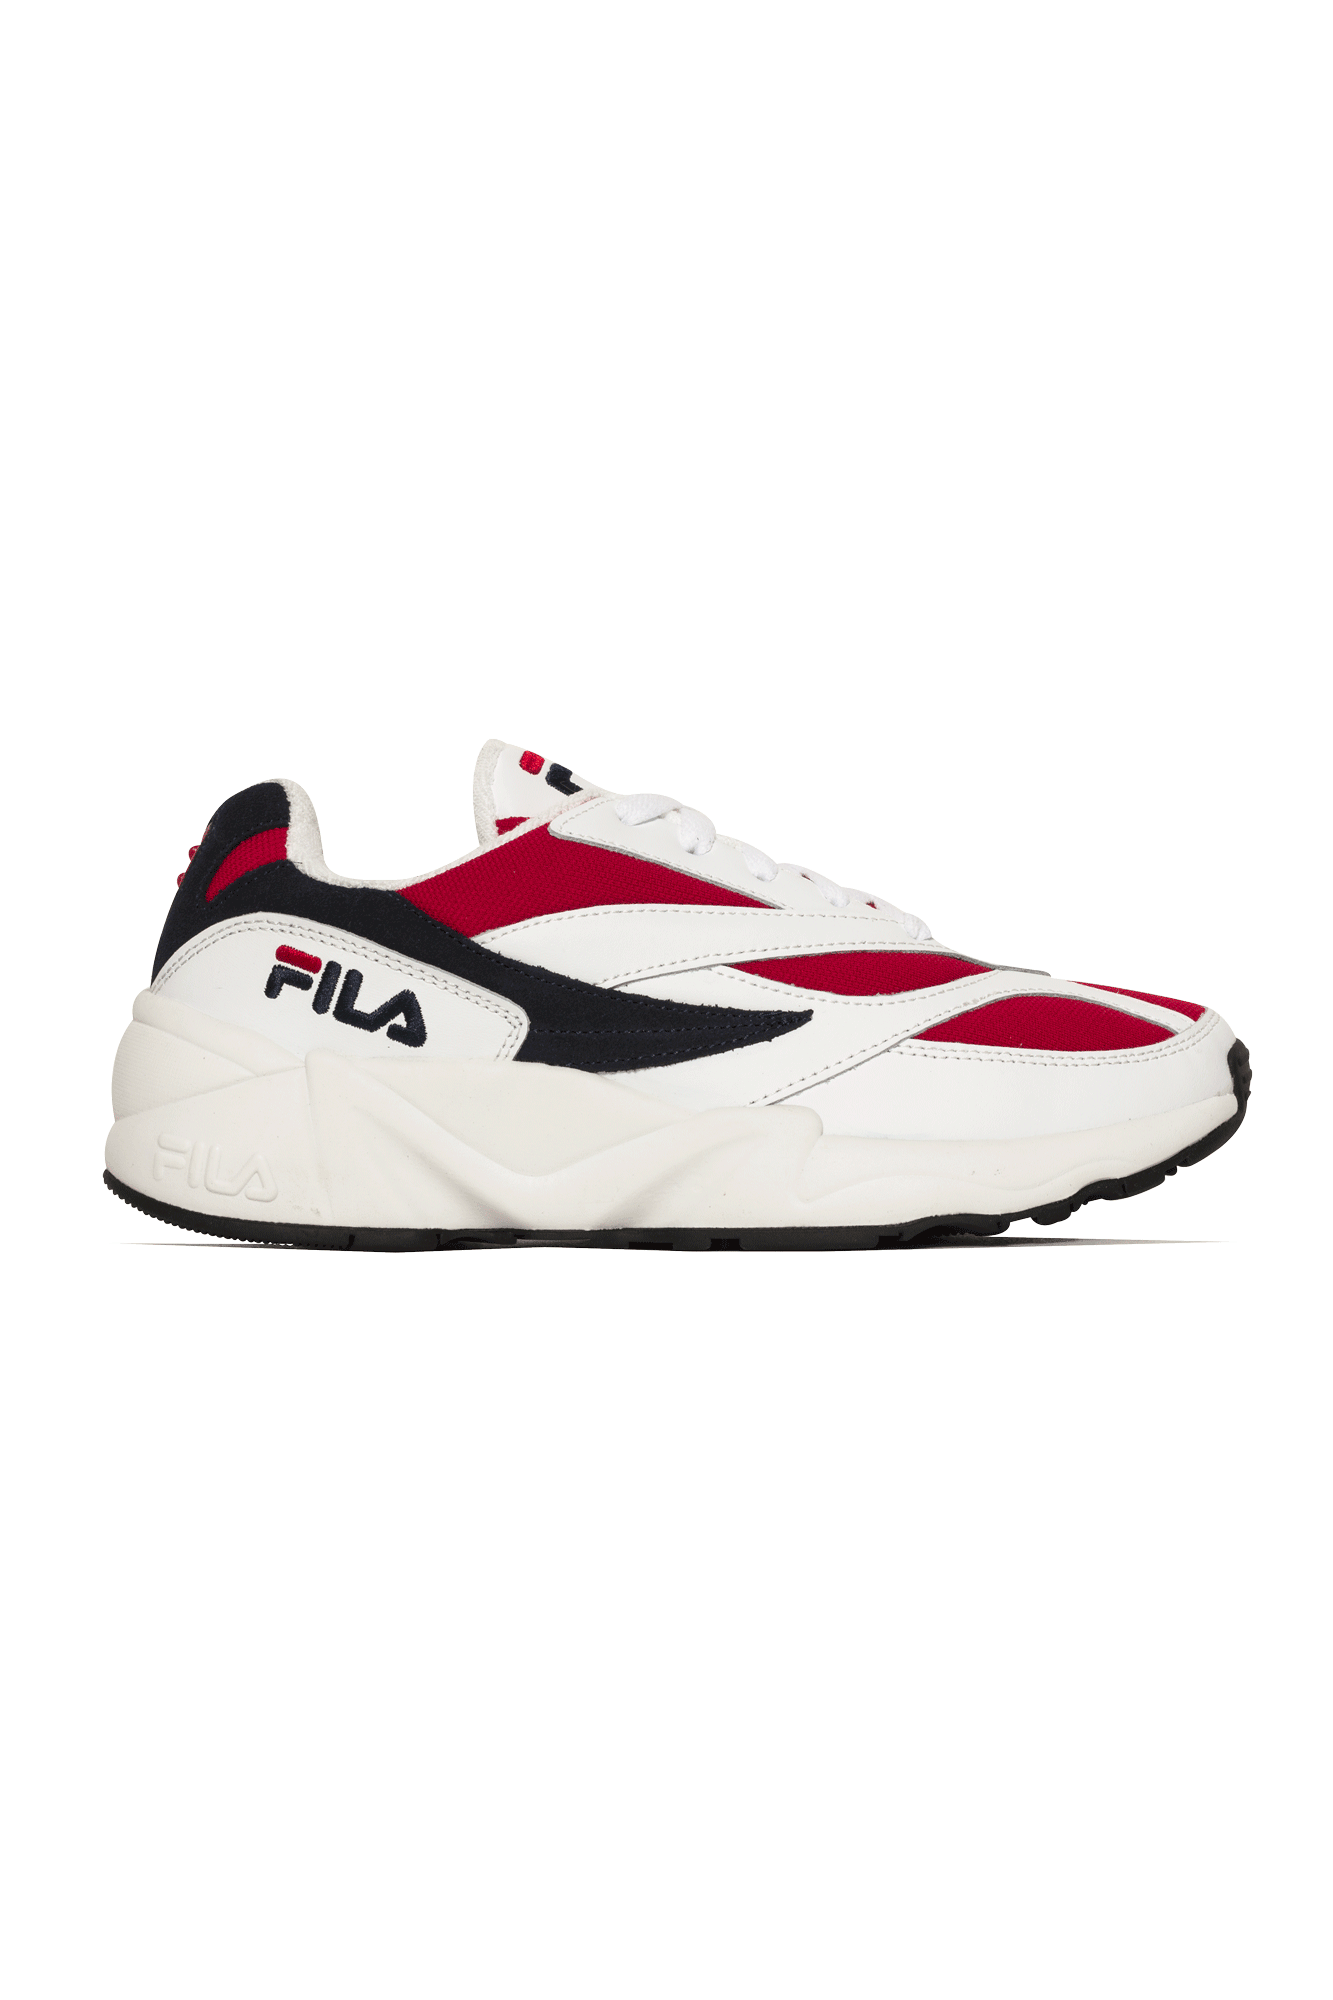 Fila Sneakers Venom Low WMN Bianco 1010291#000#150#5,5 - One Block Down